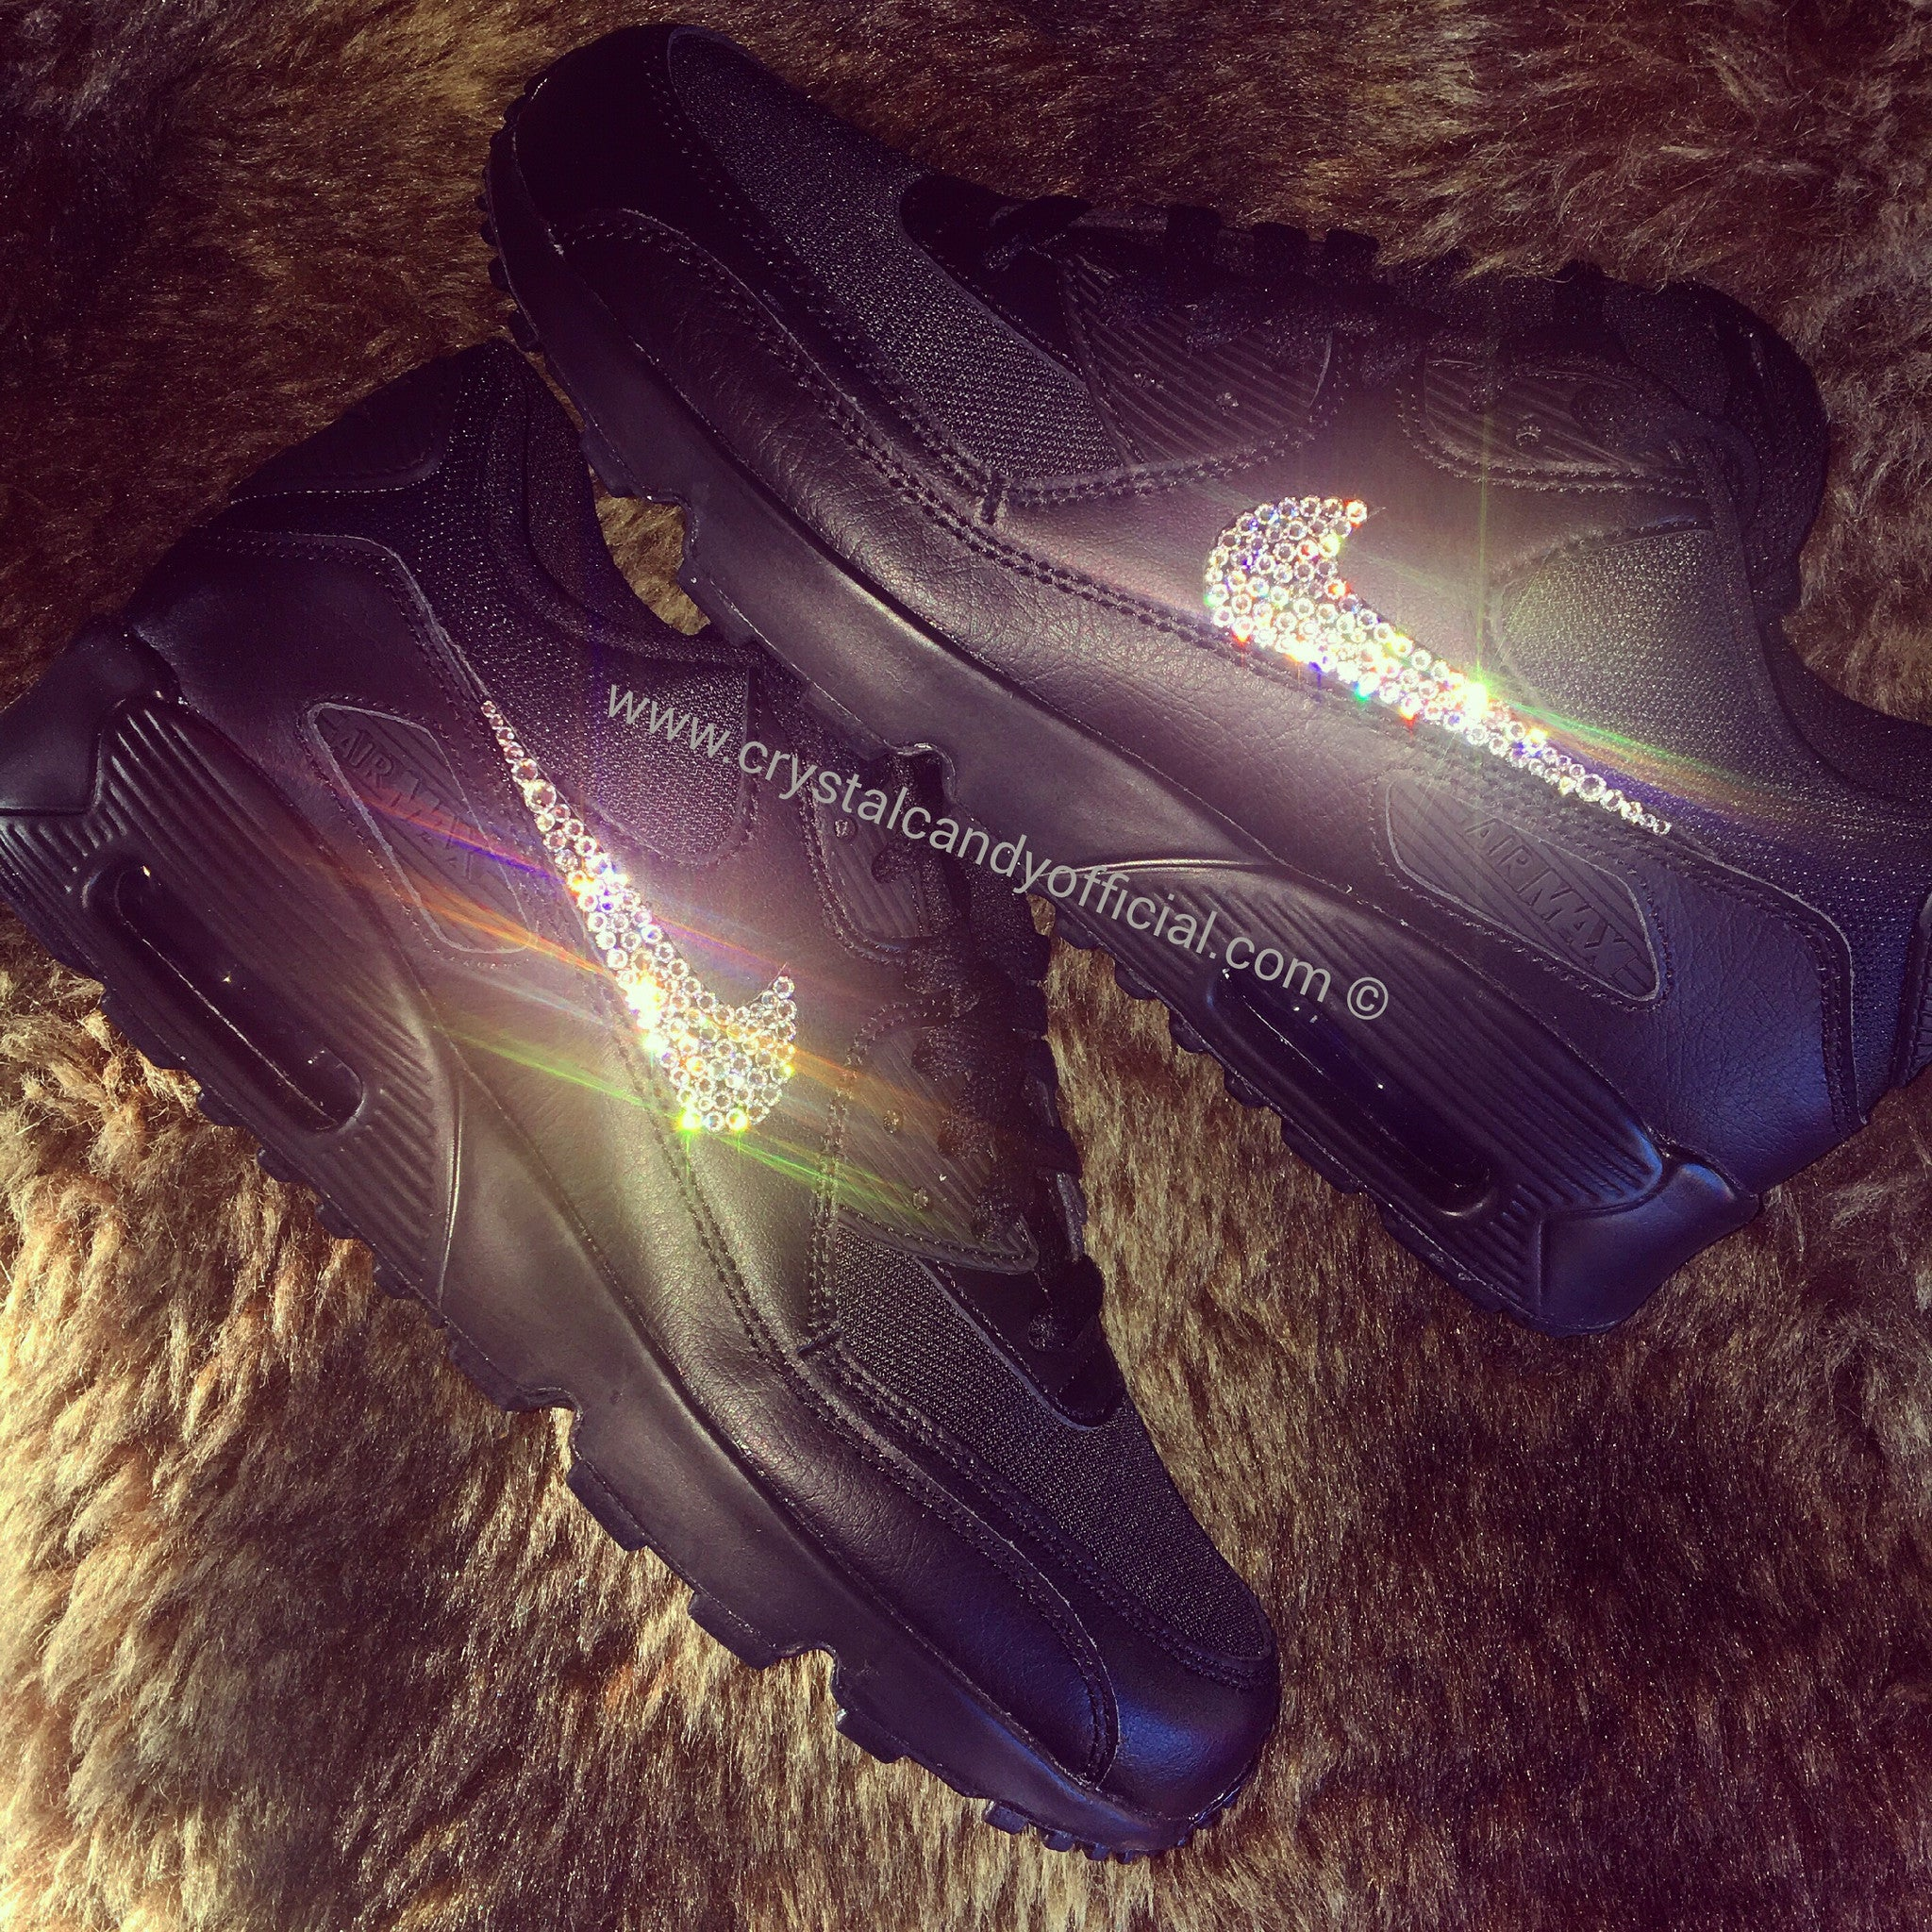 fb24dfda40d2e2 ... buy crystal nike air max 90s in black ticks only e6669 c4275